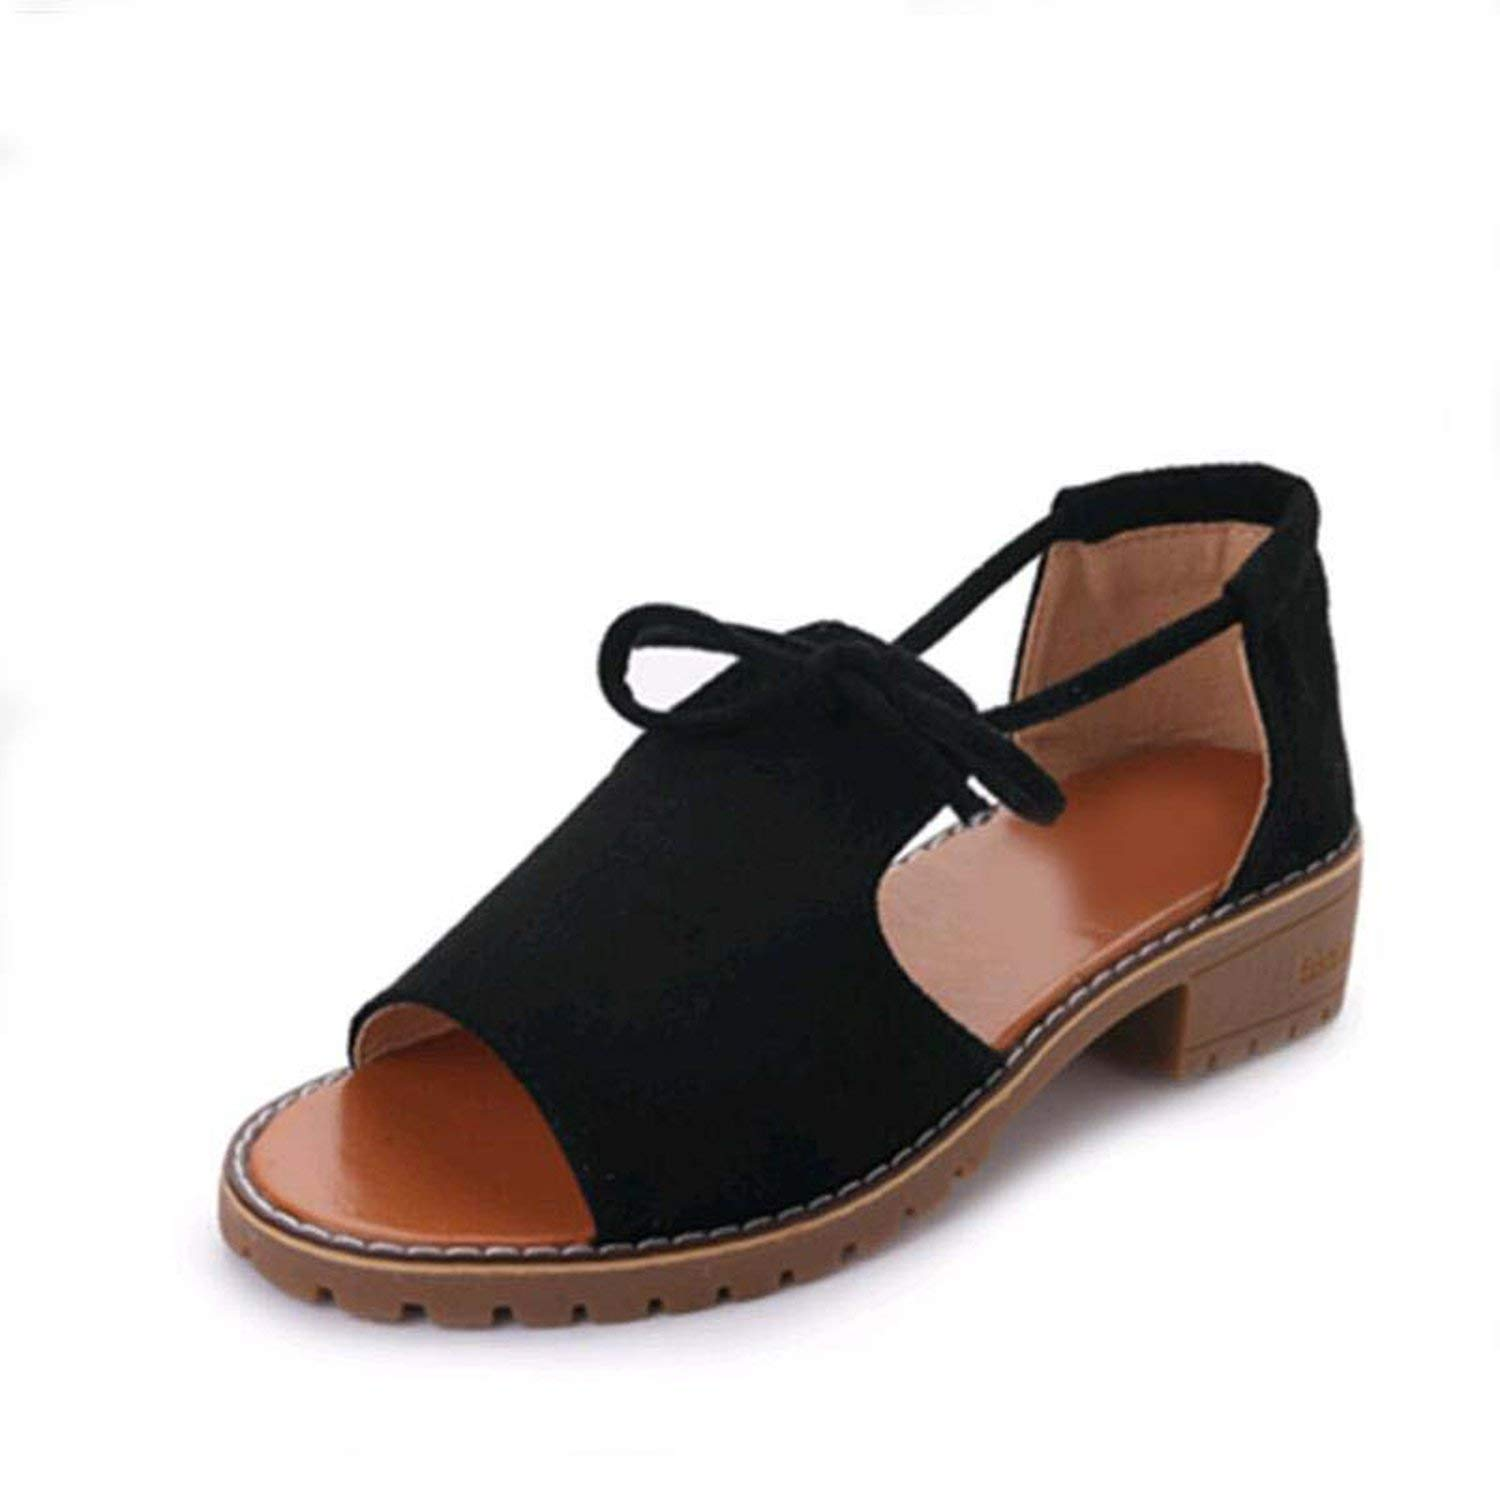 Romantic moments Women Sandals 2018 New Thick with Sandals Female Summer Fish Mouth Buckle Solid Color Low-Heeled